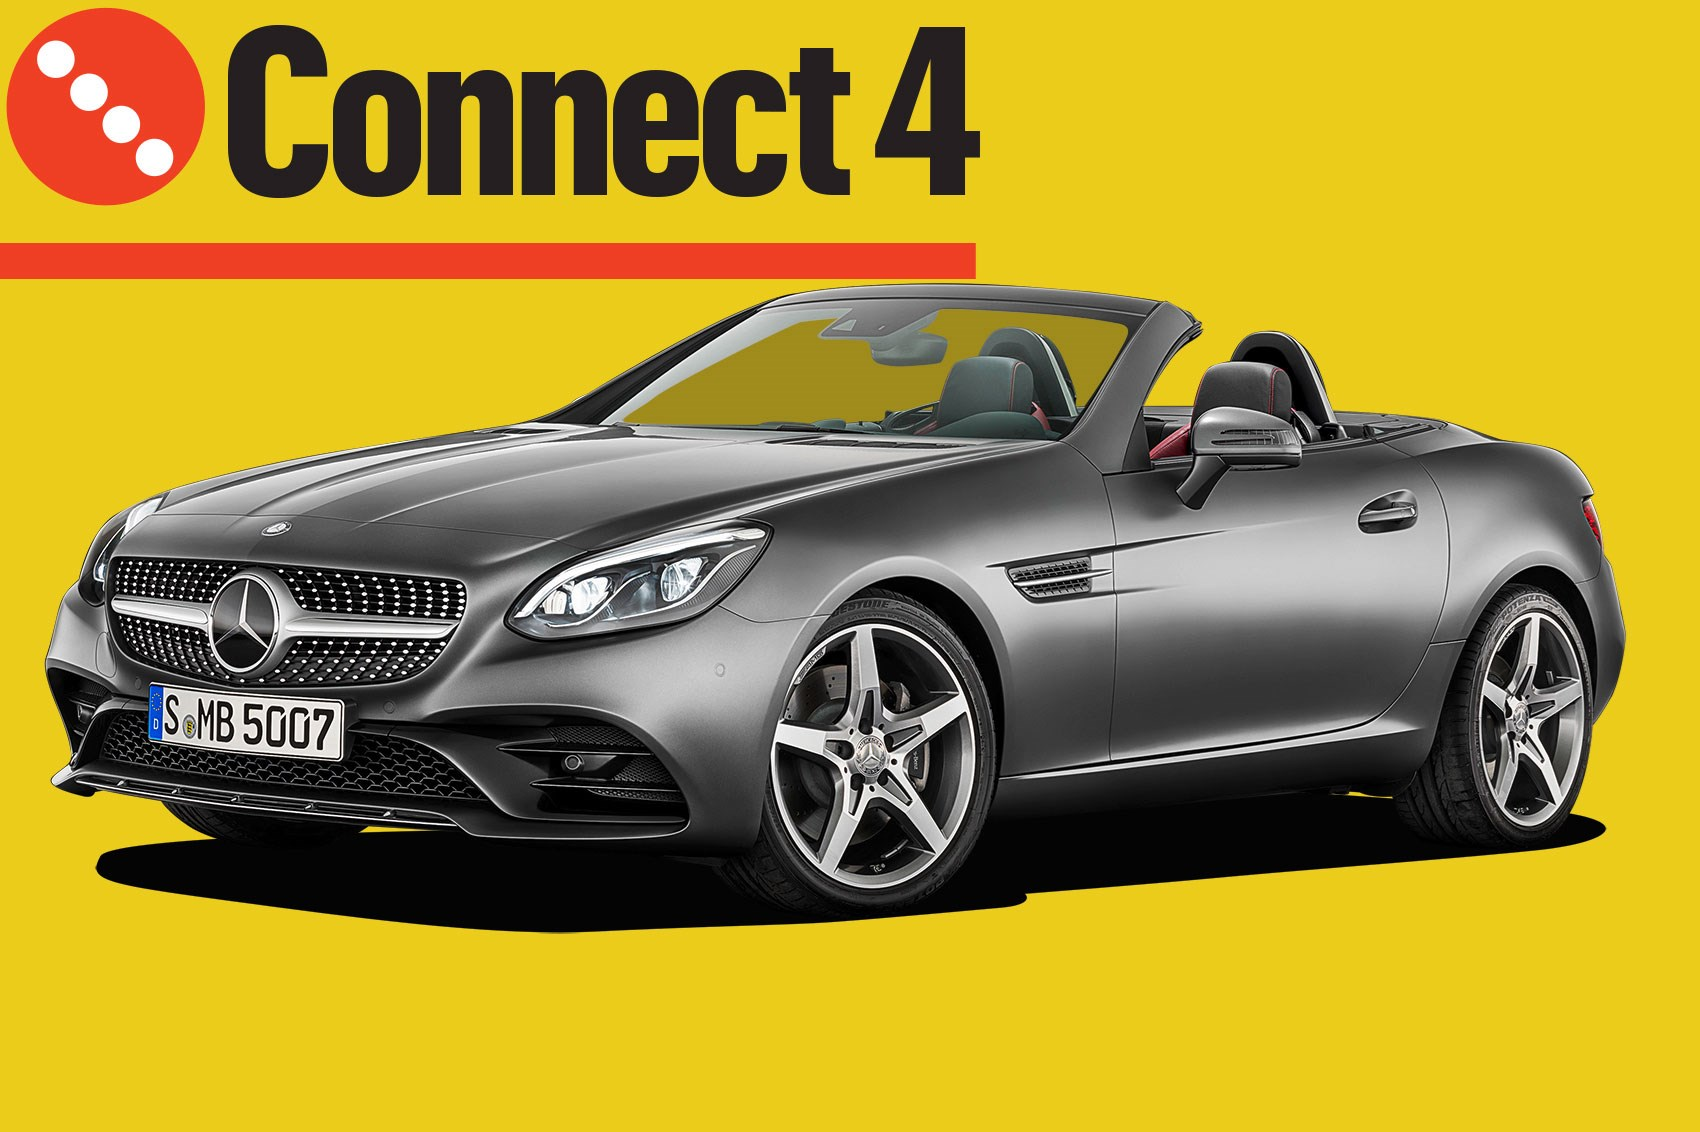 Connect 4 mercedes roadsters car february 2016 by car for Mercedes benz com connect